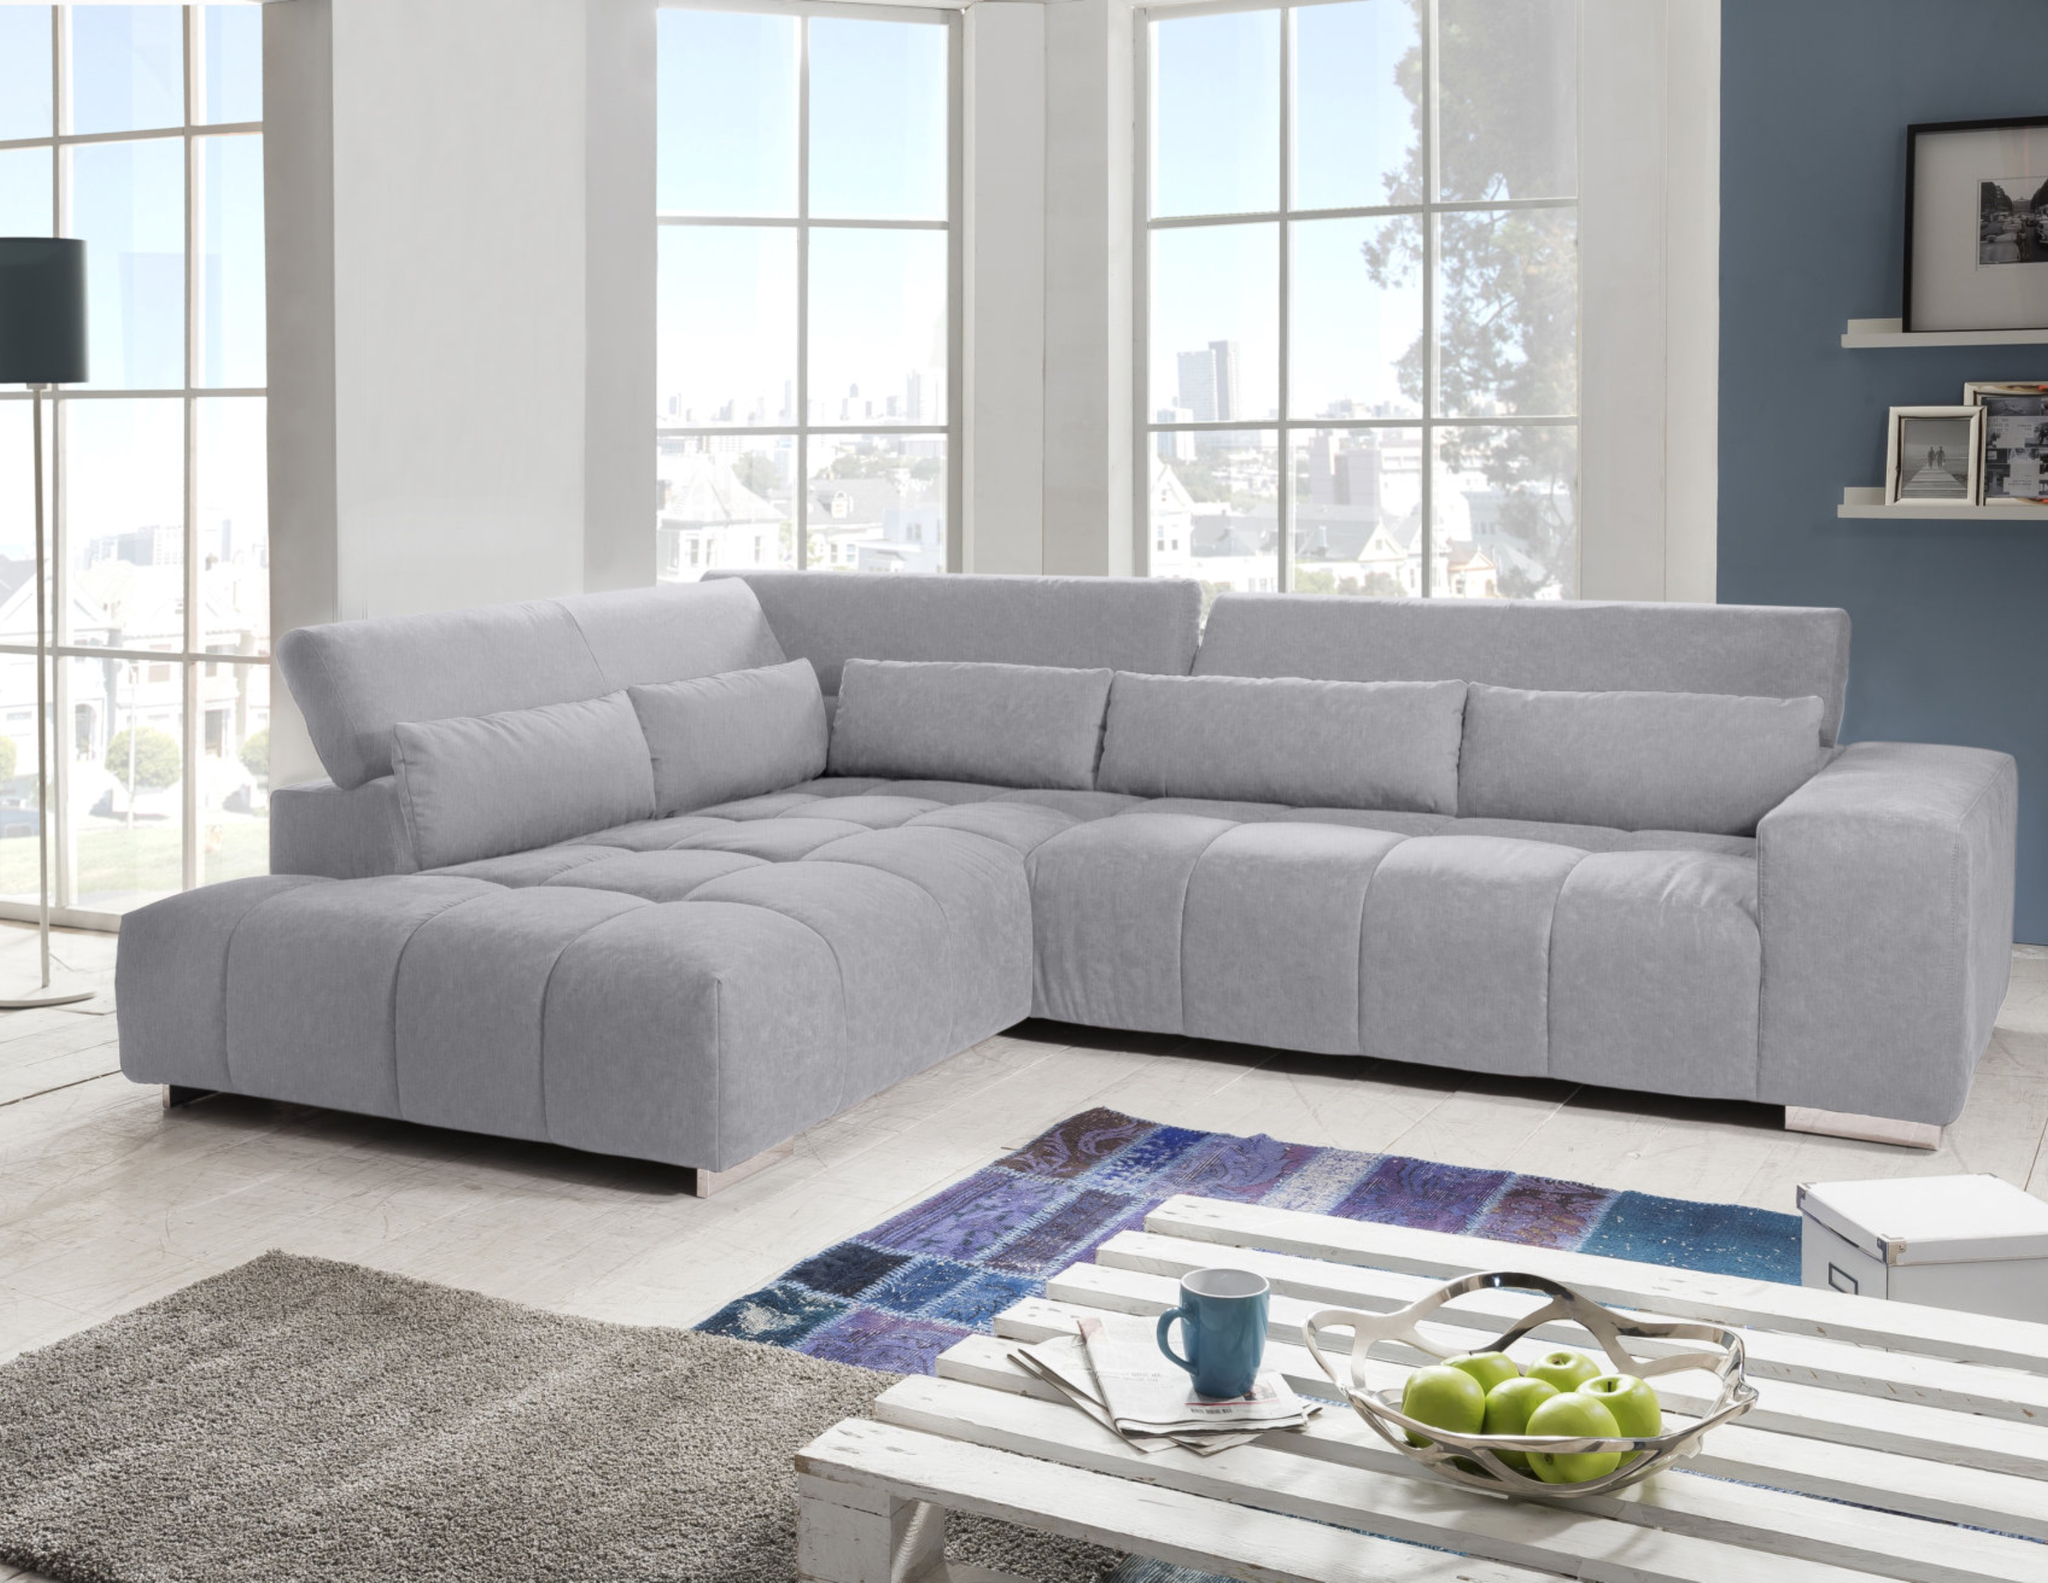 sofa gnstig kaufen online trendy designer sofas sofa kaufen online schn sofa gnstig von with. Black Bedroom Furniture Sets. Home Design Ideas